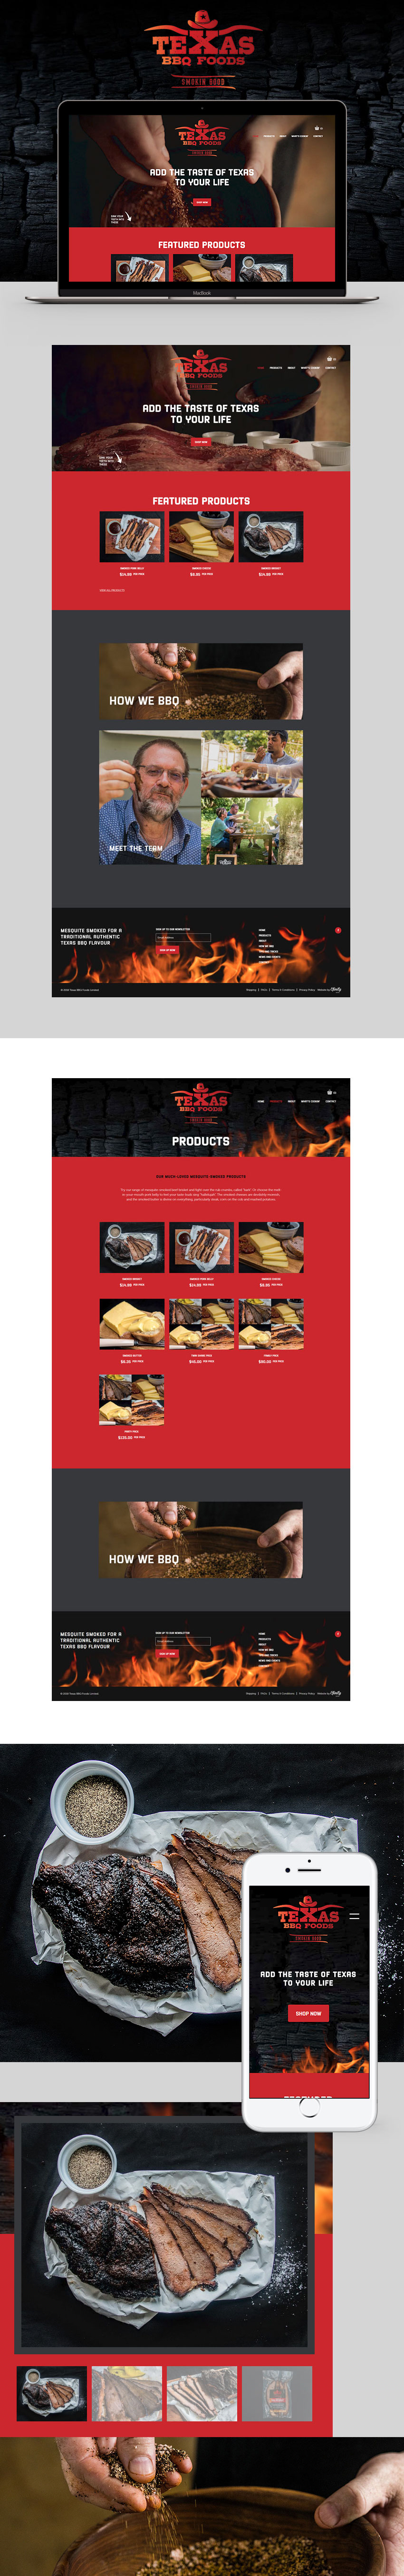 Texas BBQ Foods Screen Shot